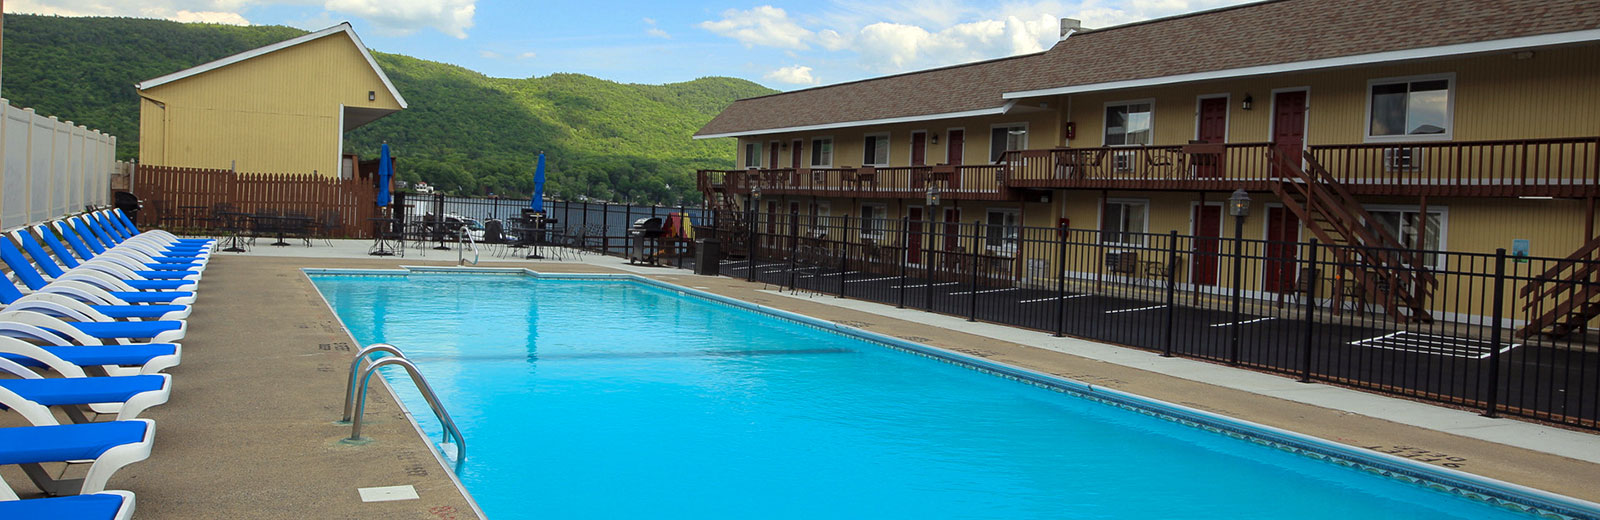 On Resort amenities includes an in-ground pool near the lake